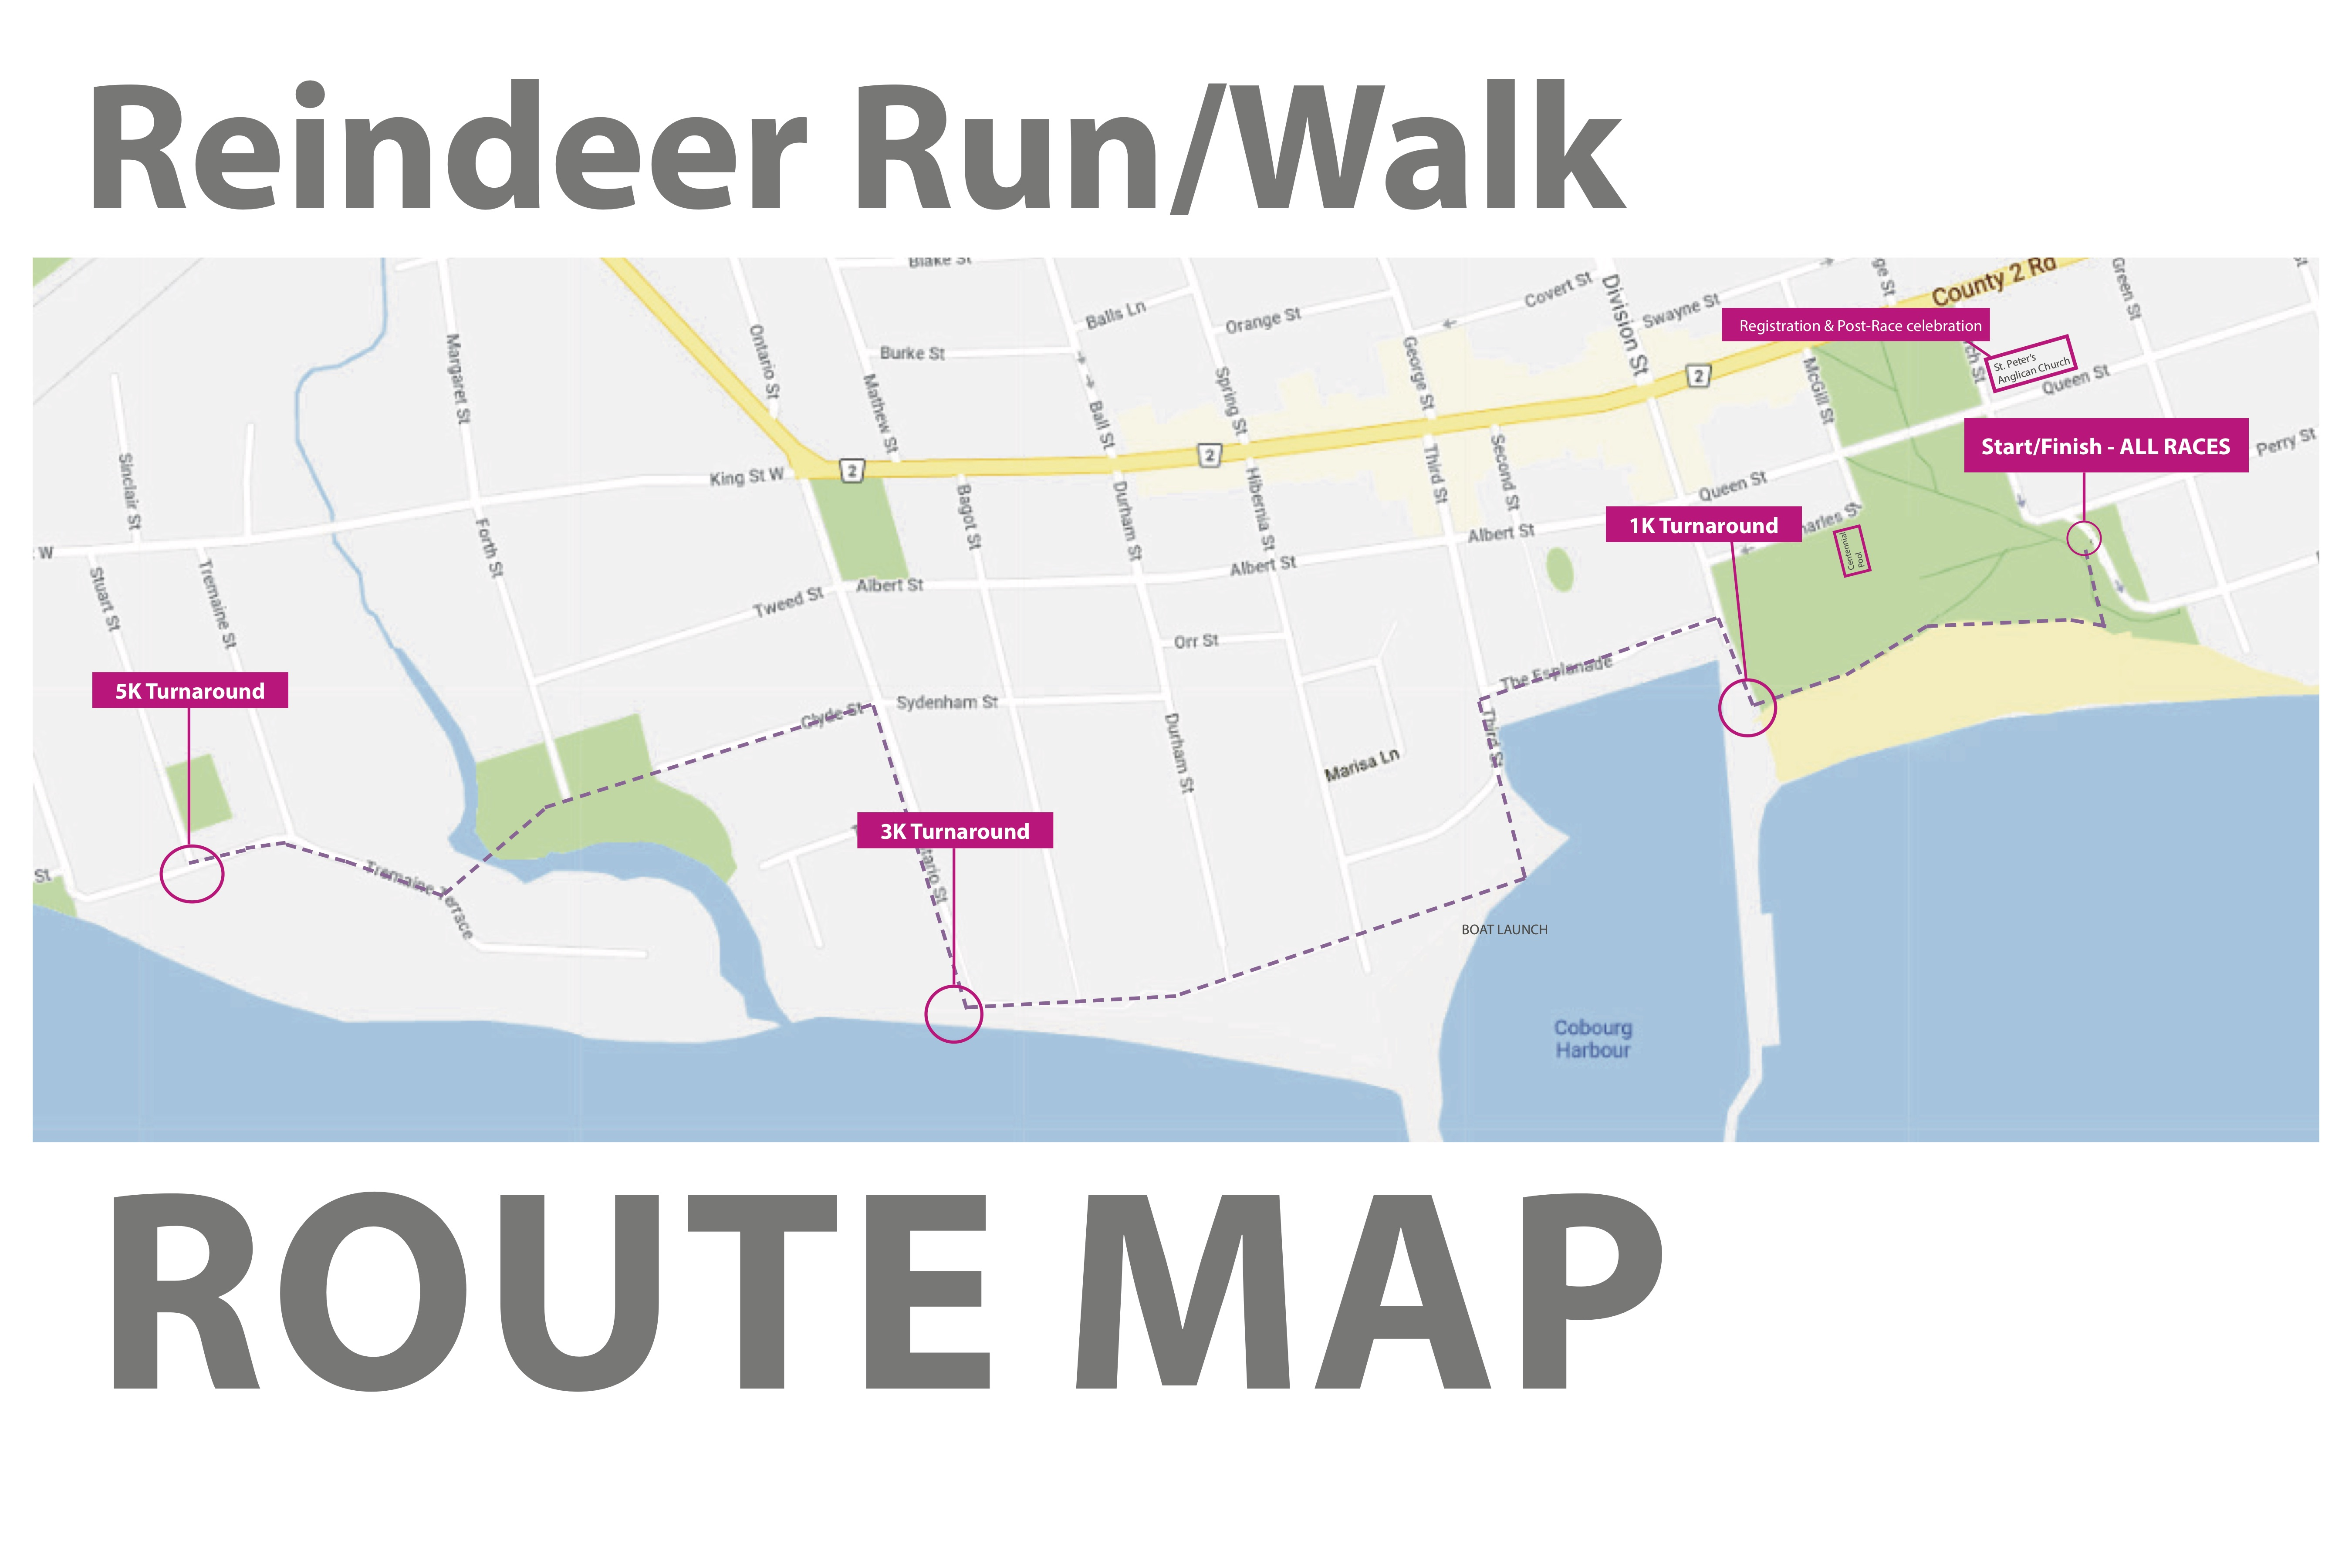 reindeer run Route Map 2019 without marshalls